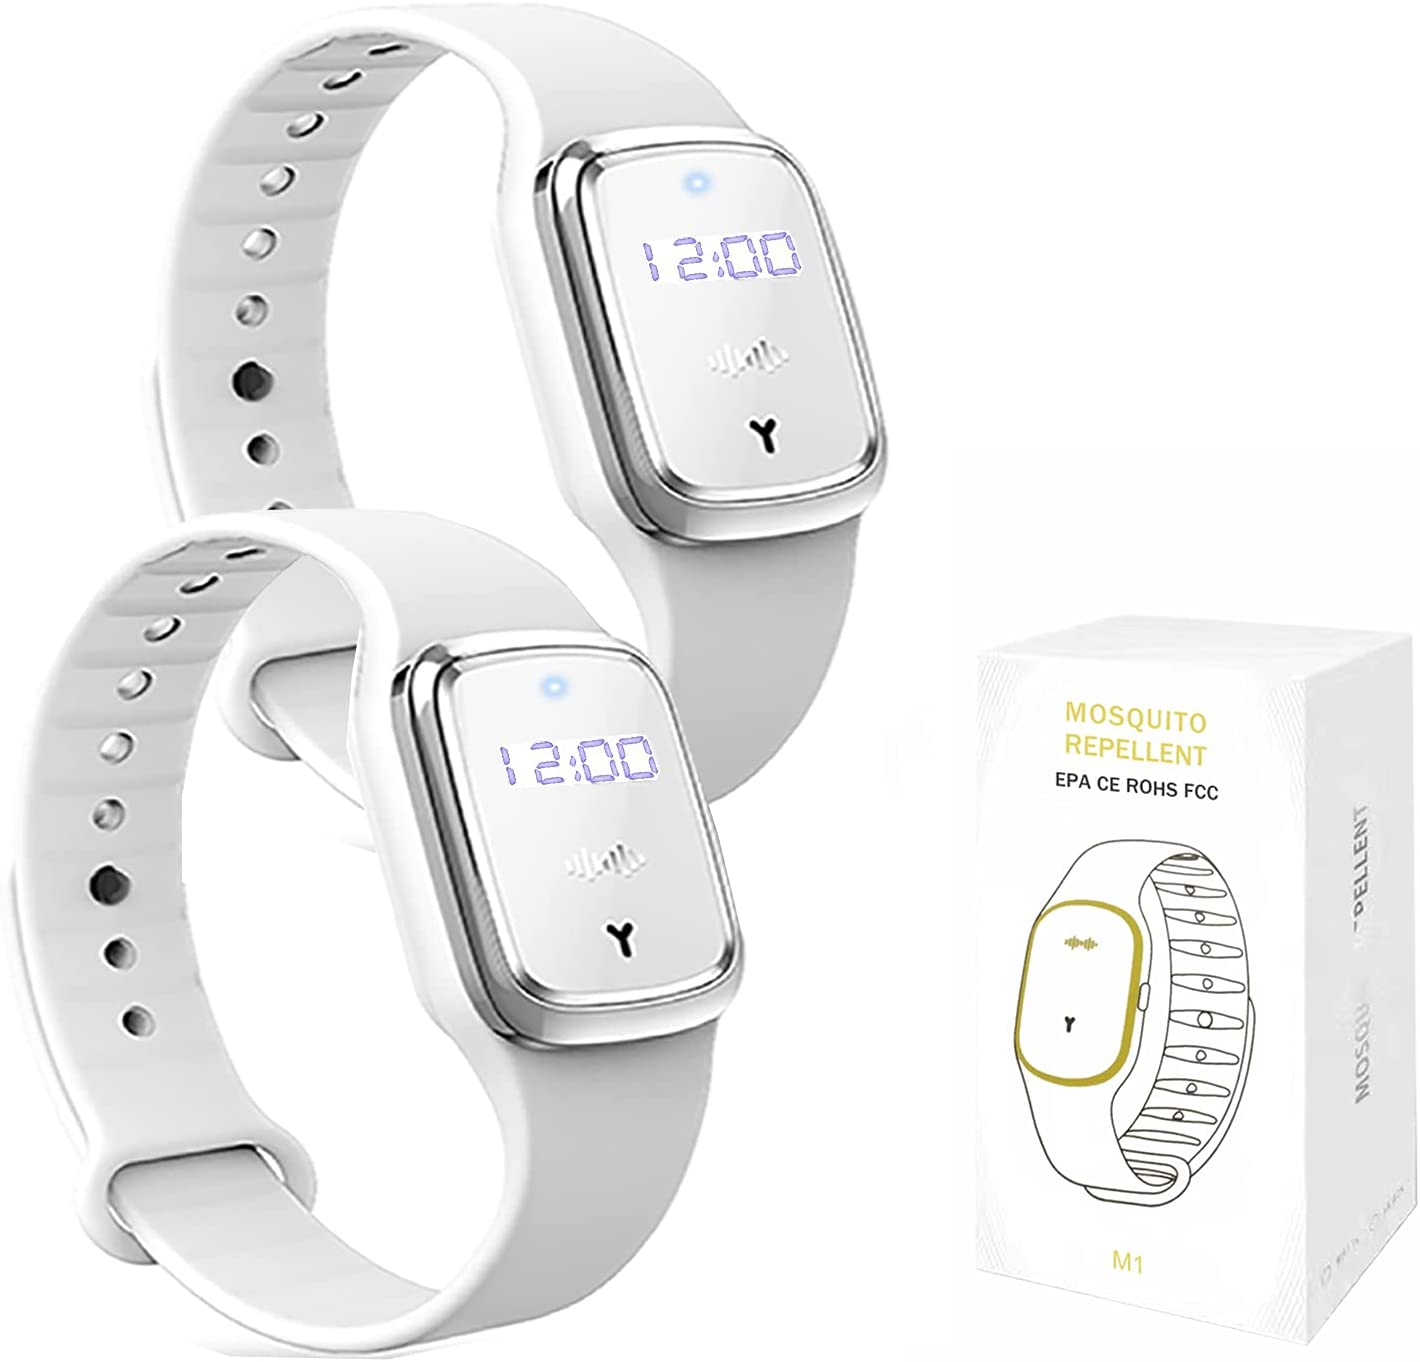 QU.SBEARY Ultrasonic free shipping Long Beach Mall Mosquito Repellent Bracelet Elec with Watch